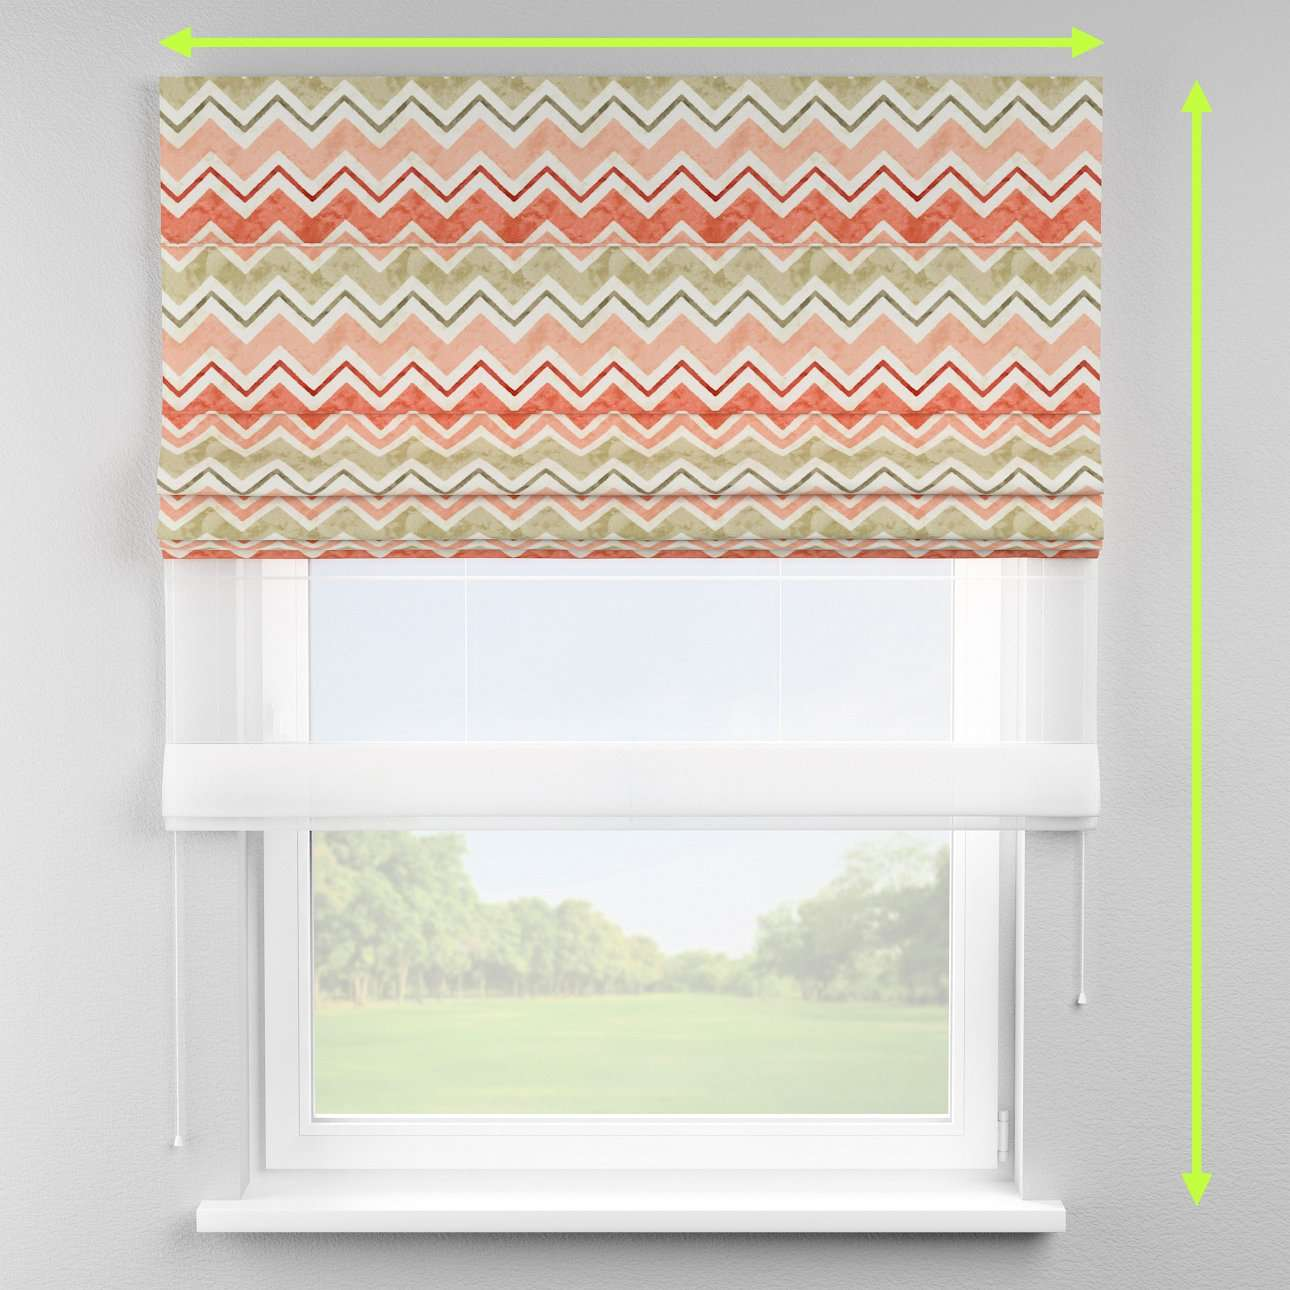 Voile and fabric roman blind (DUO II) in collection Acapulco, fabric: 141-40